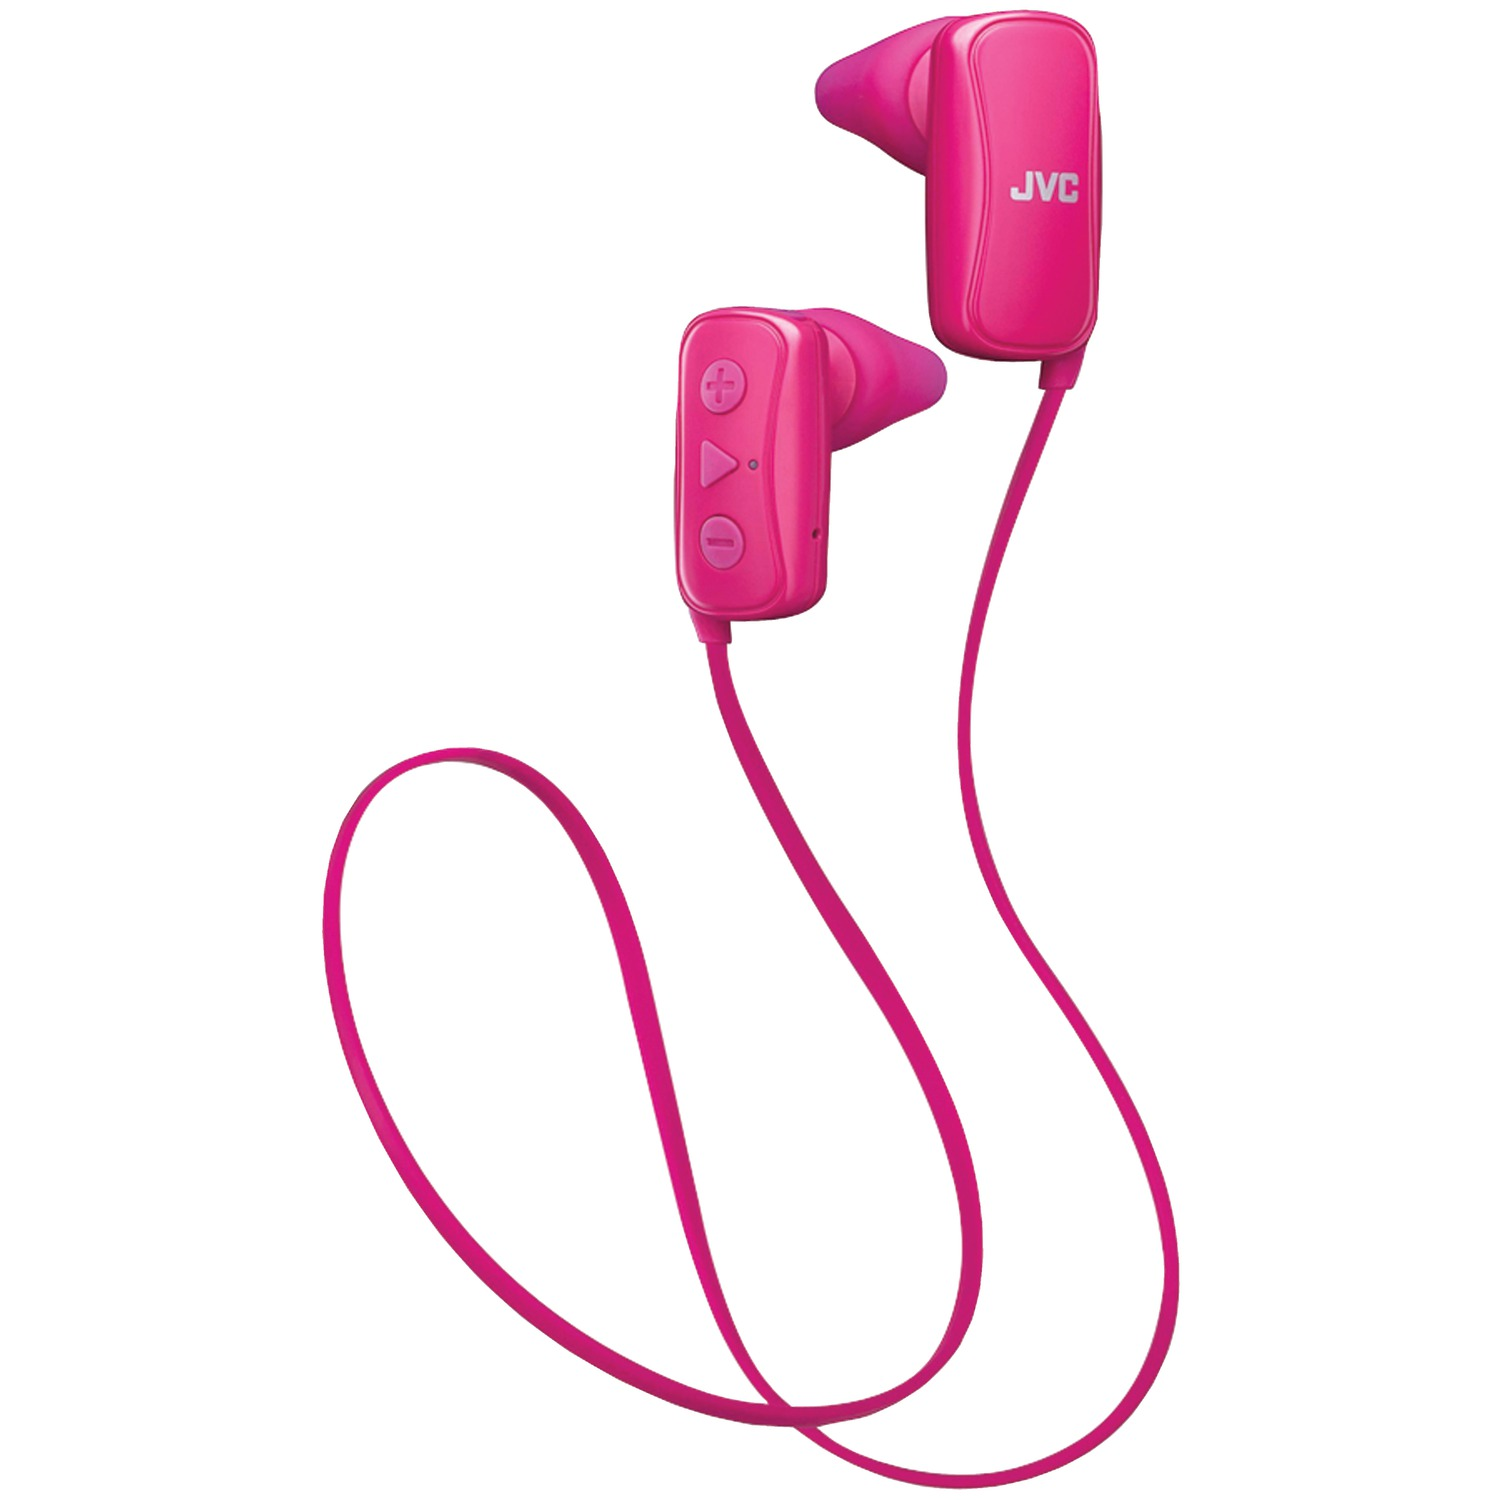 Image for Jvc Ha-F250Bt Gumy Sport - Earphones With Mic from Circuit City